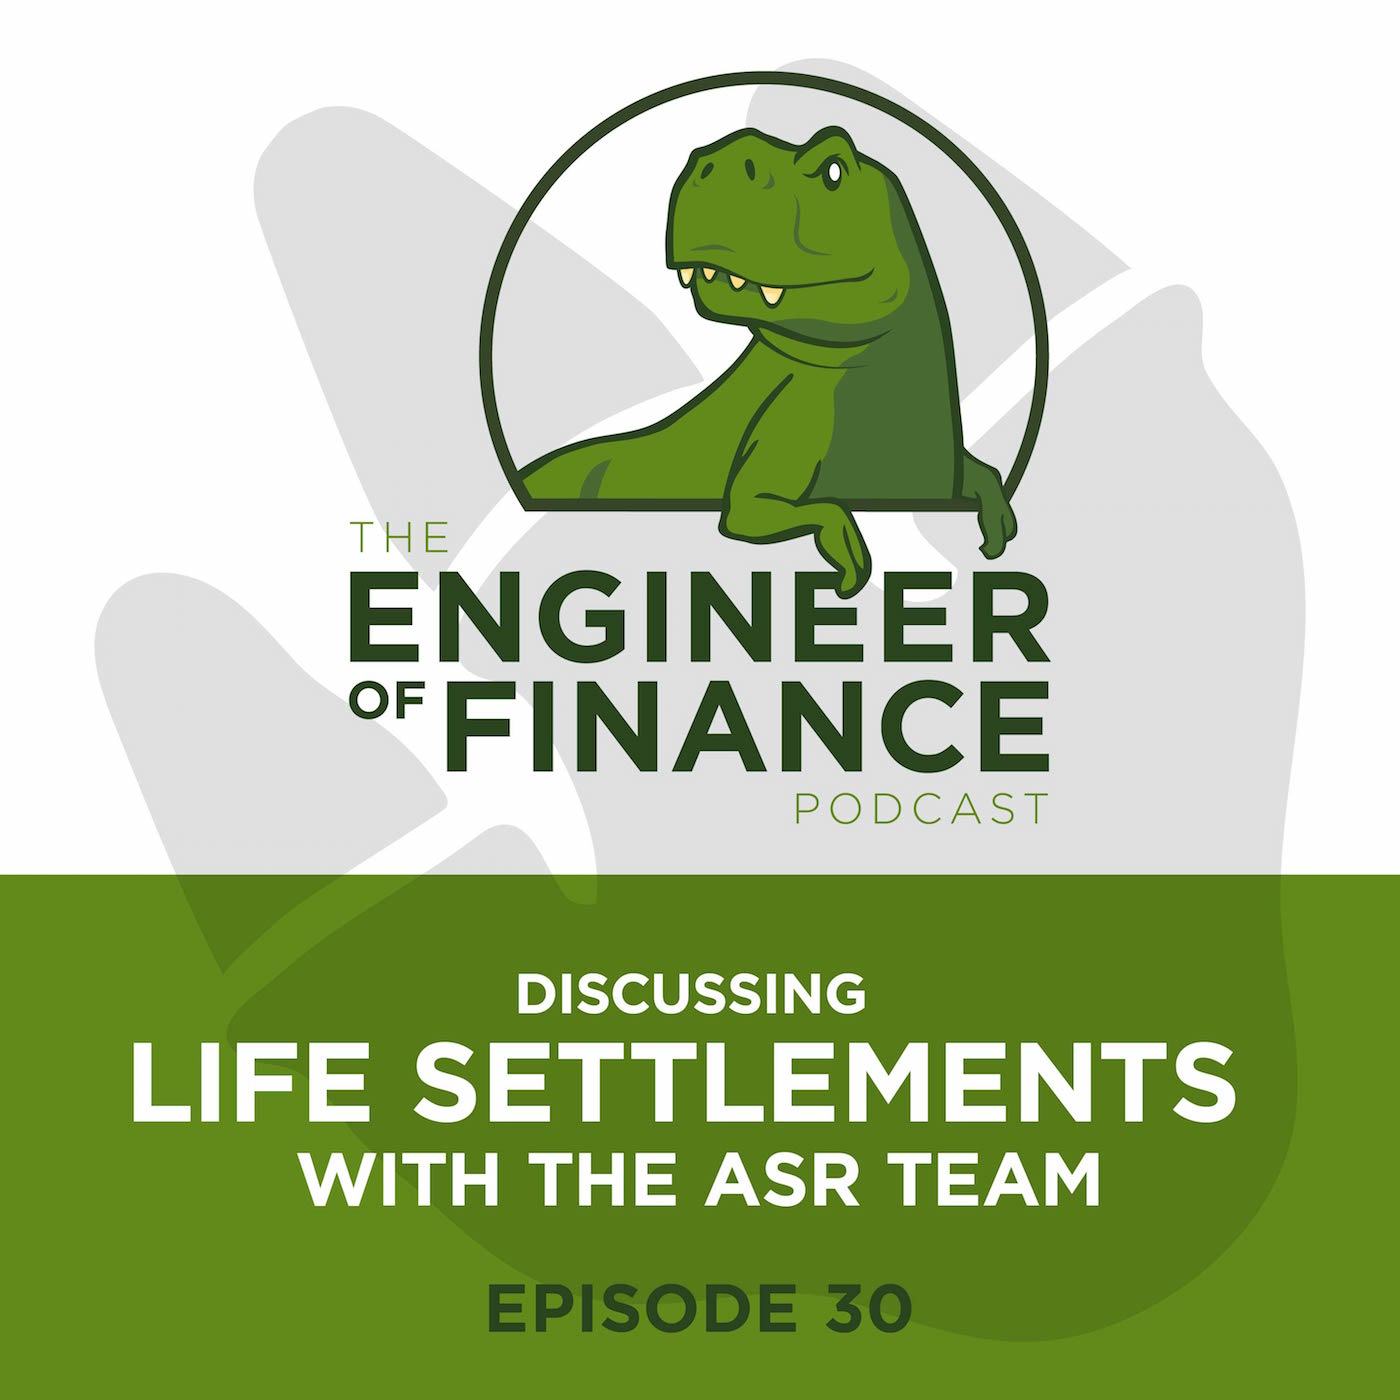 Discussing Life Settlements with the ASR Team – Episode 30